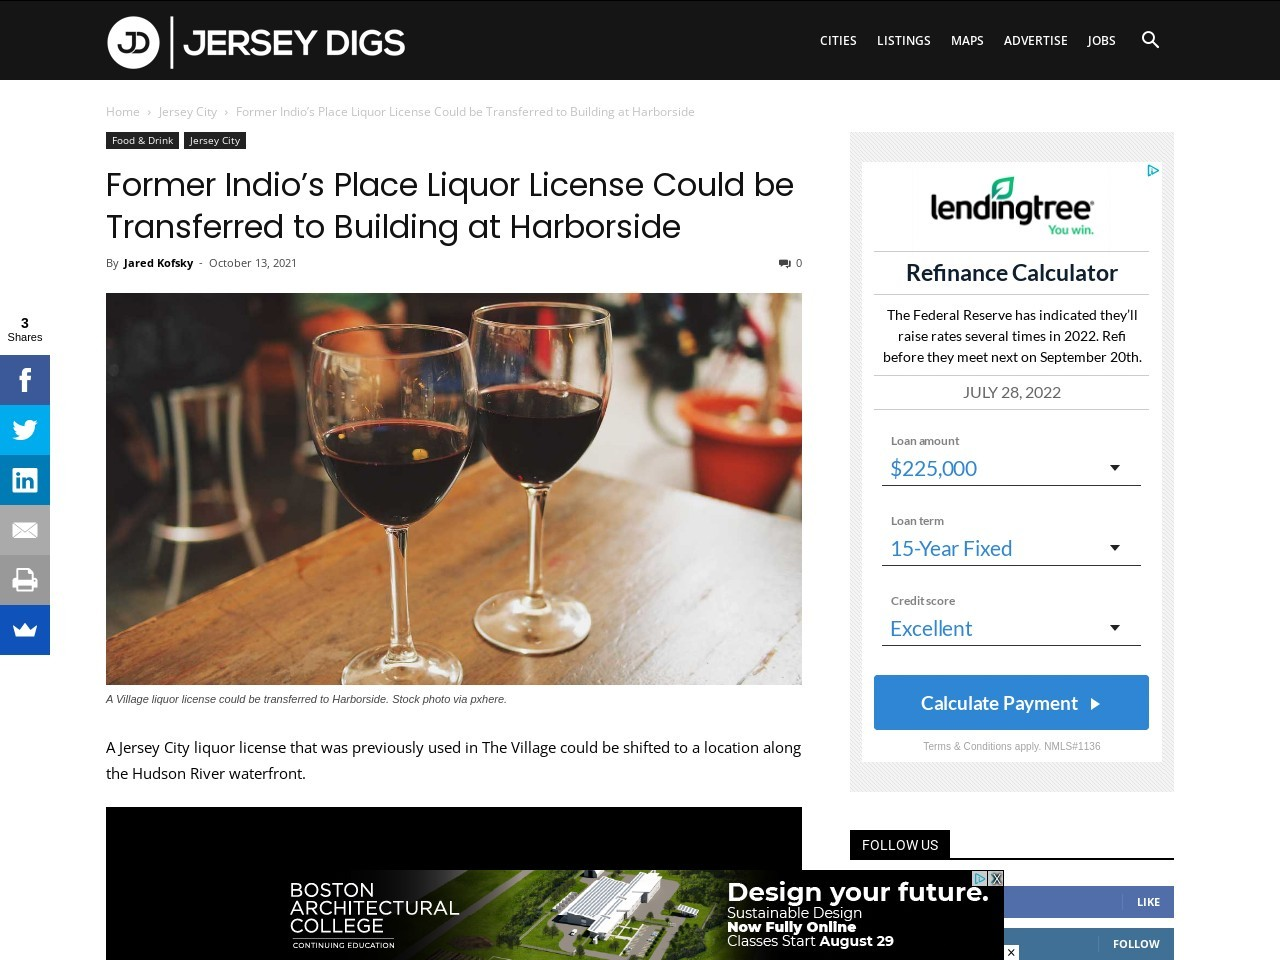 Former Indio's Place Liquor License Could be Transferred to Building at Harborside